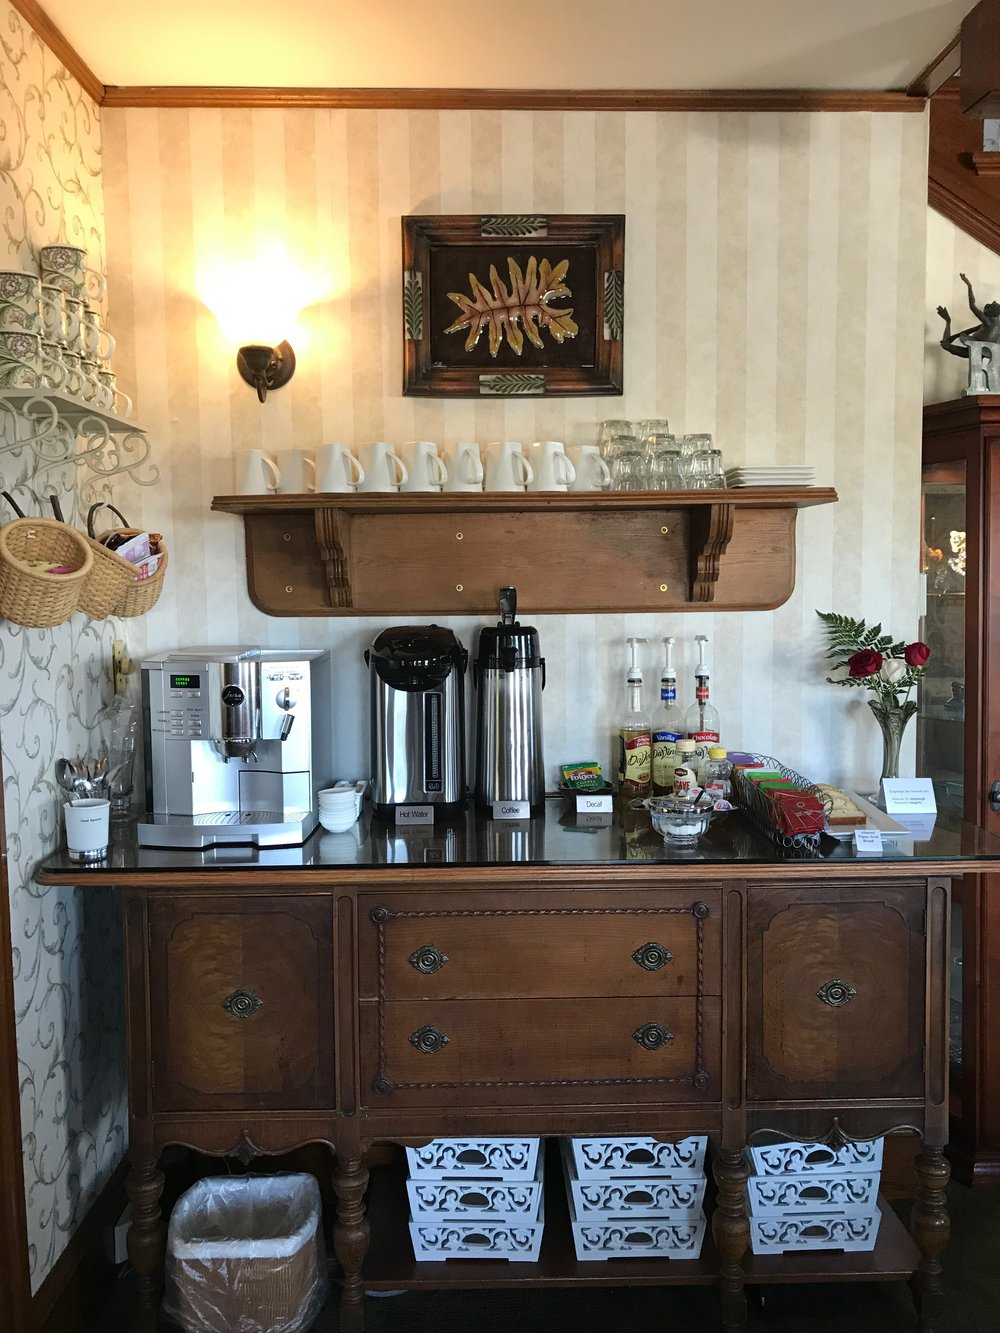 My favorite spot at the inn: the beverage station